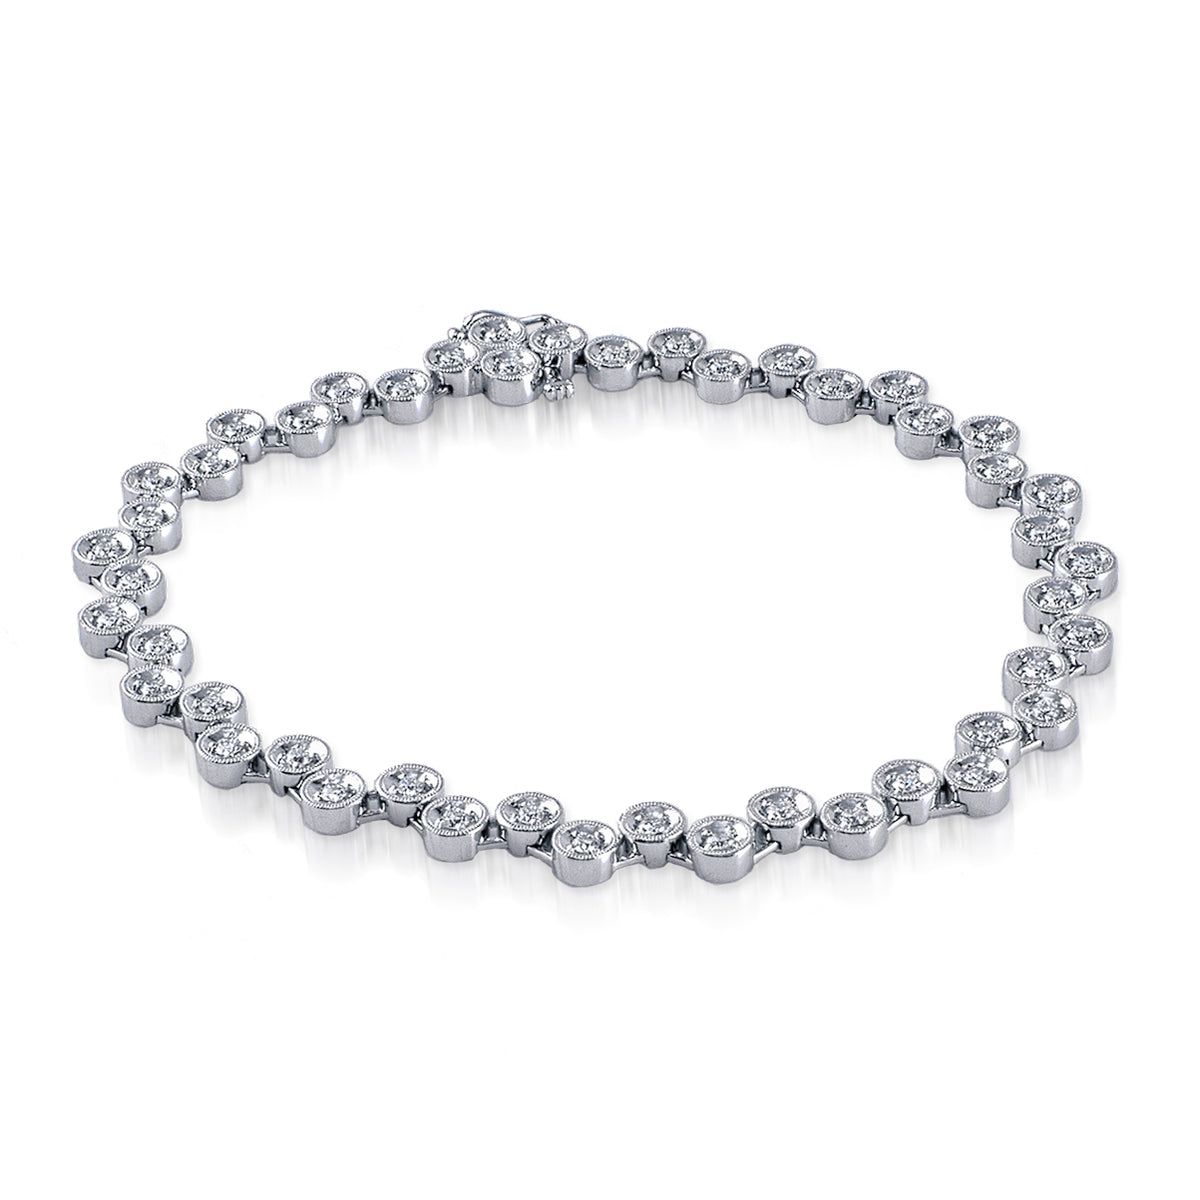 Simon G 18K White Gold Diamond Bracelet